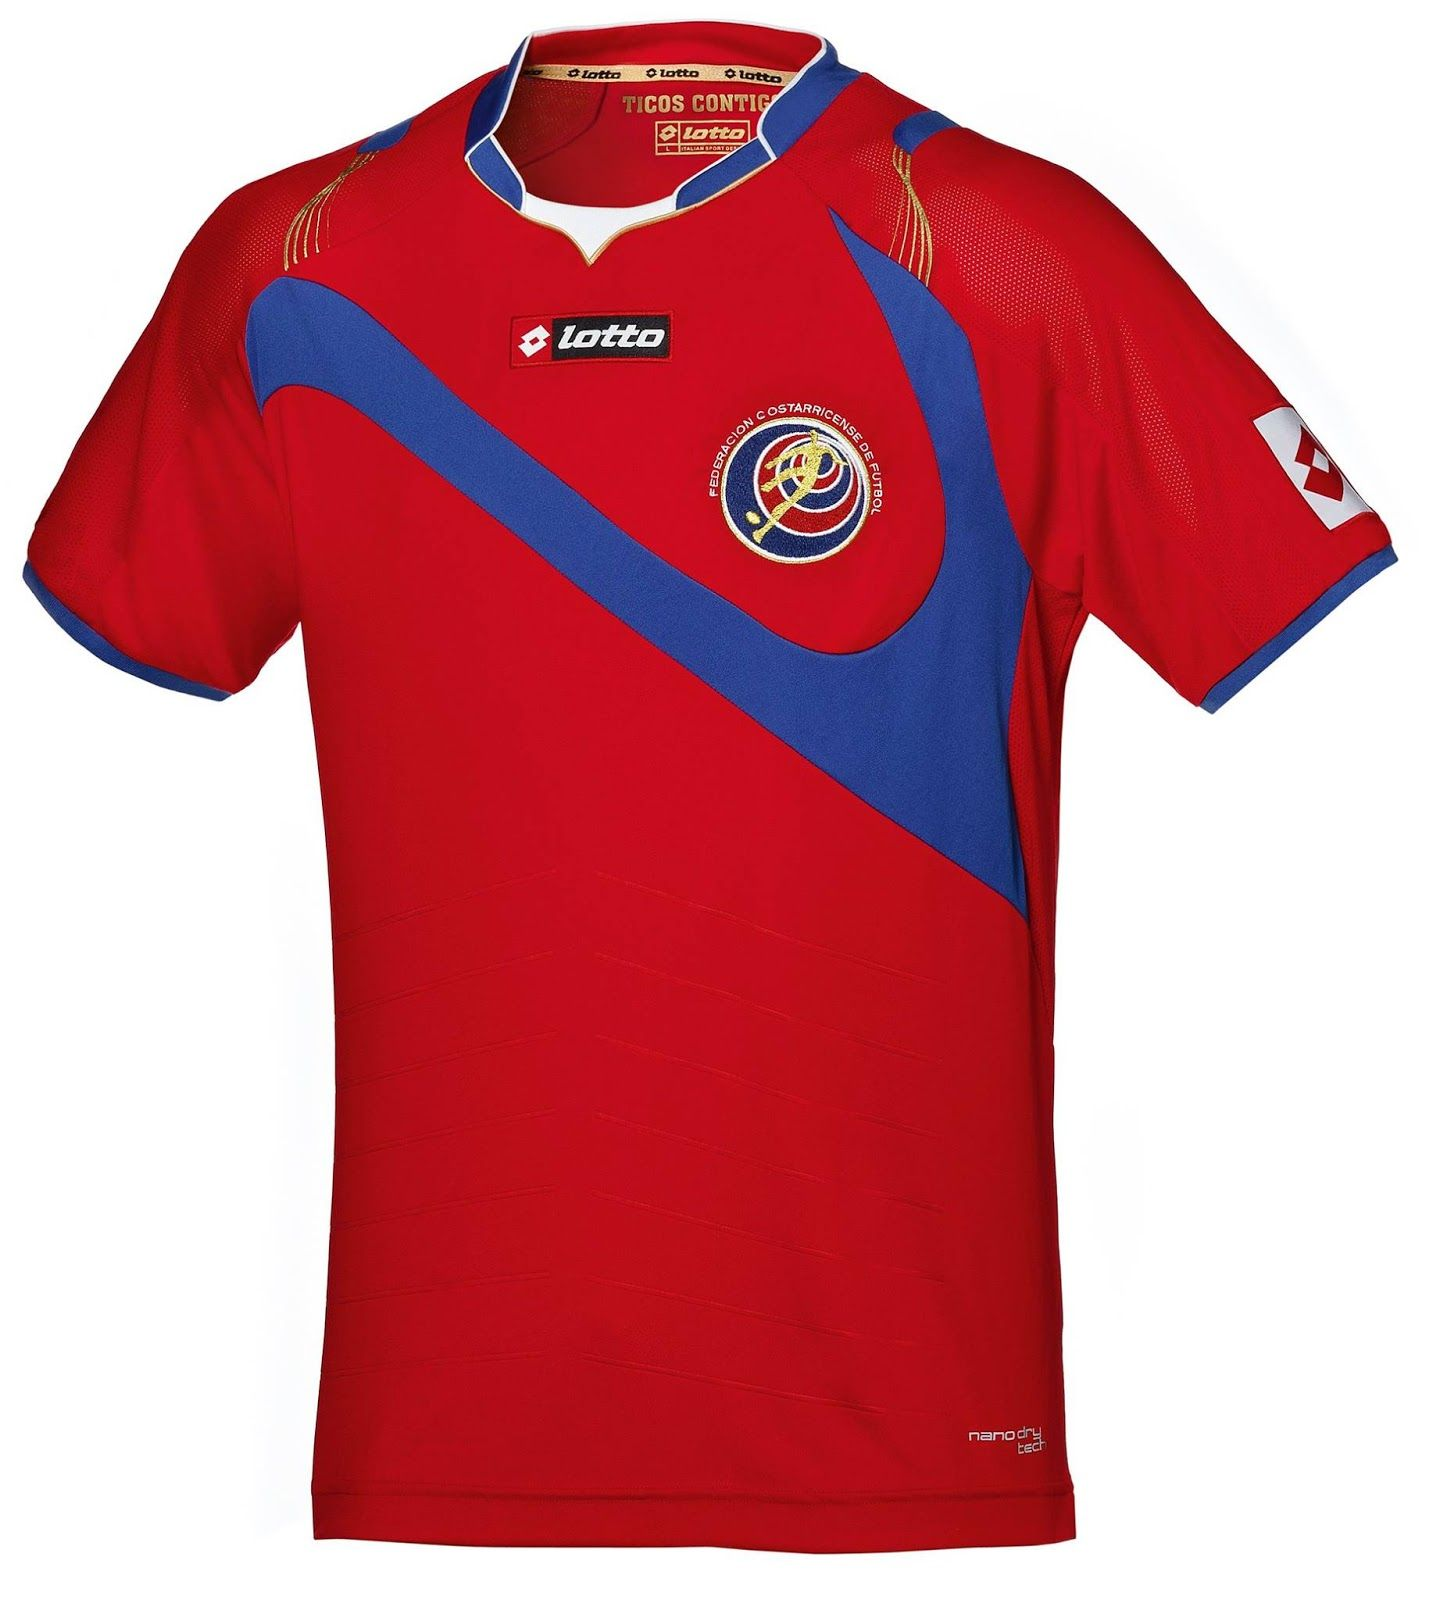 Costa Rica 2014 World Cup Kits Released Footy Headlines